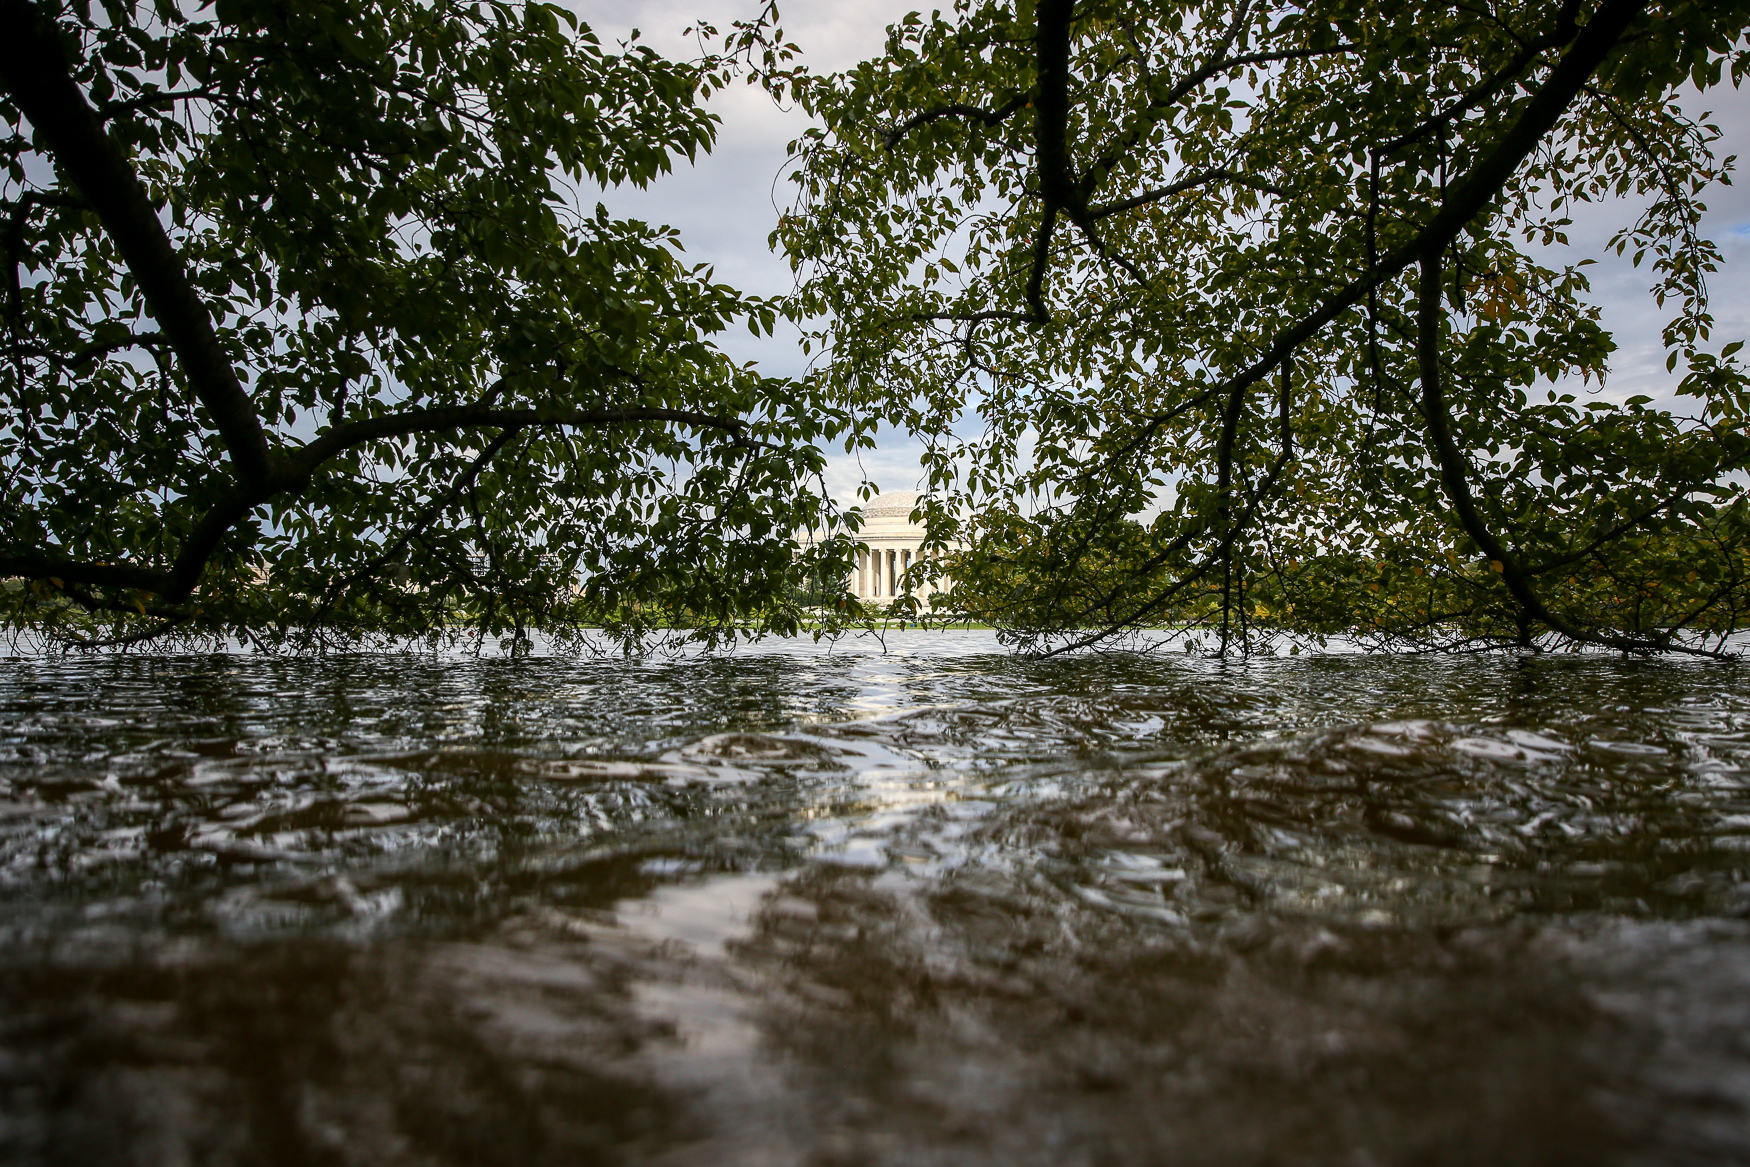 Hurricane Florence slammed into The Carolinas, meaning D.C. missed the worst of its effects. However, the torrential rain has had a profound effect on D.C.'s waterfront areas. From the Tidal Basin to Hains point, here's what the onslaught of rain looks like in The District. (Amanda Andrade-Rhoades)